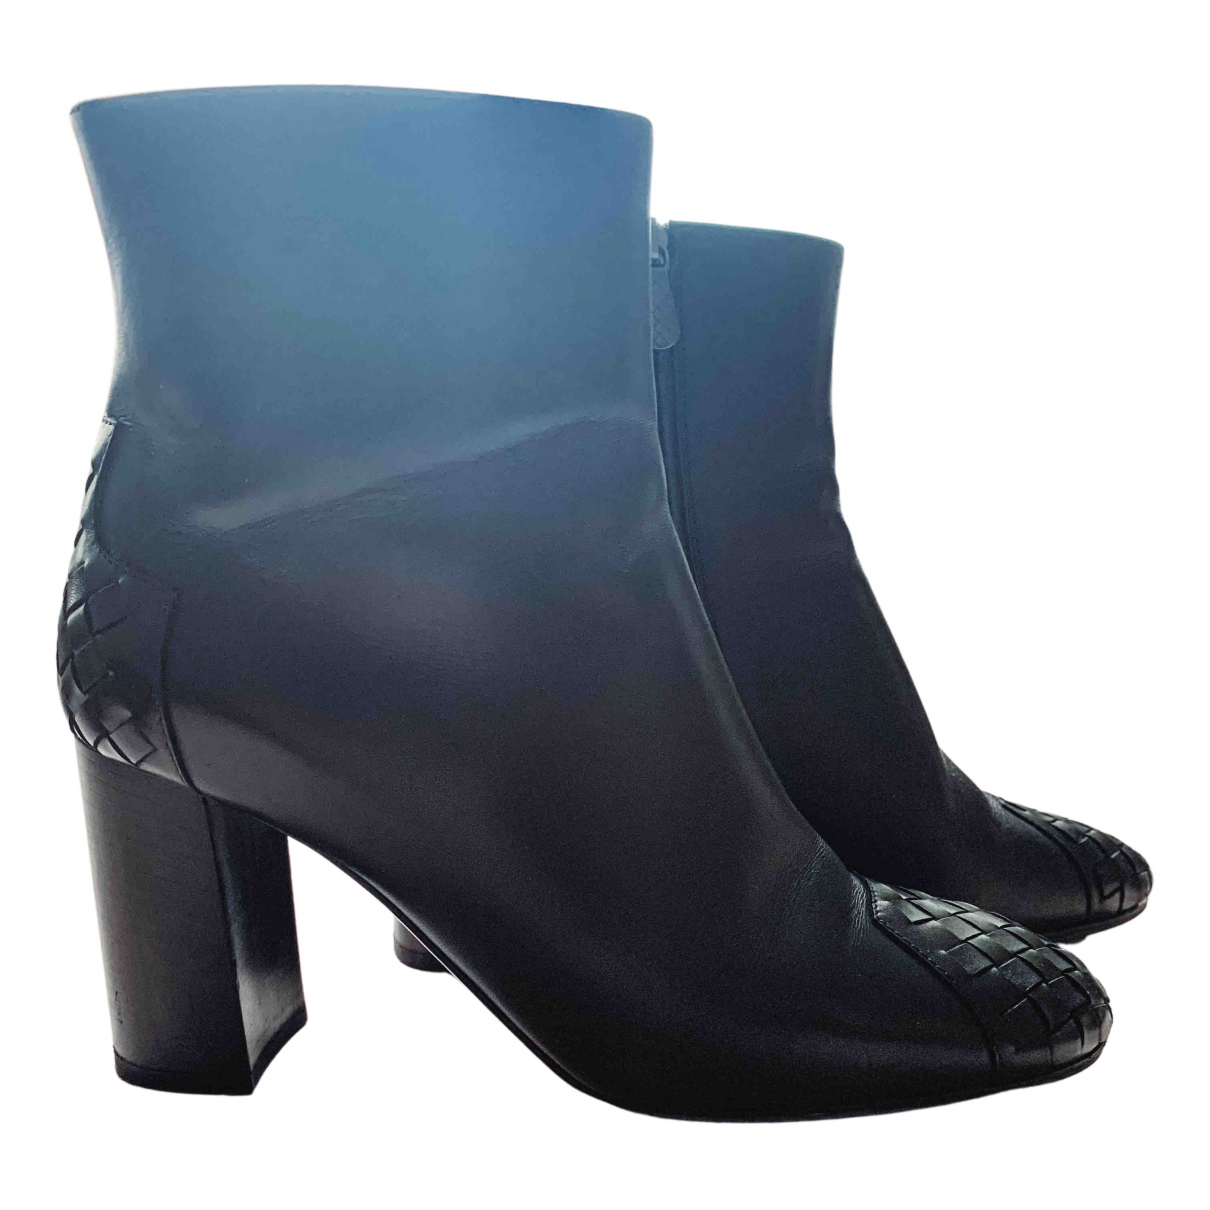 Bottega Veneta N Black Leather Ankle boots for Women 39.5 EU